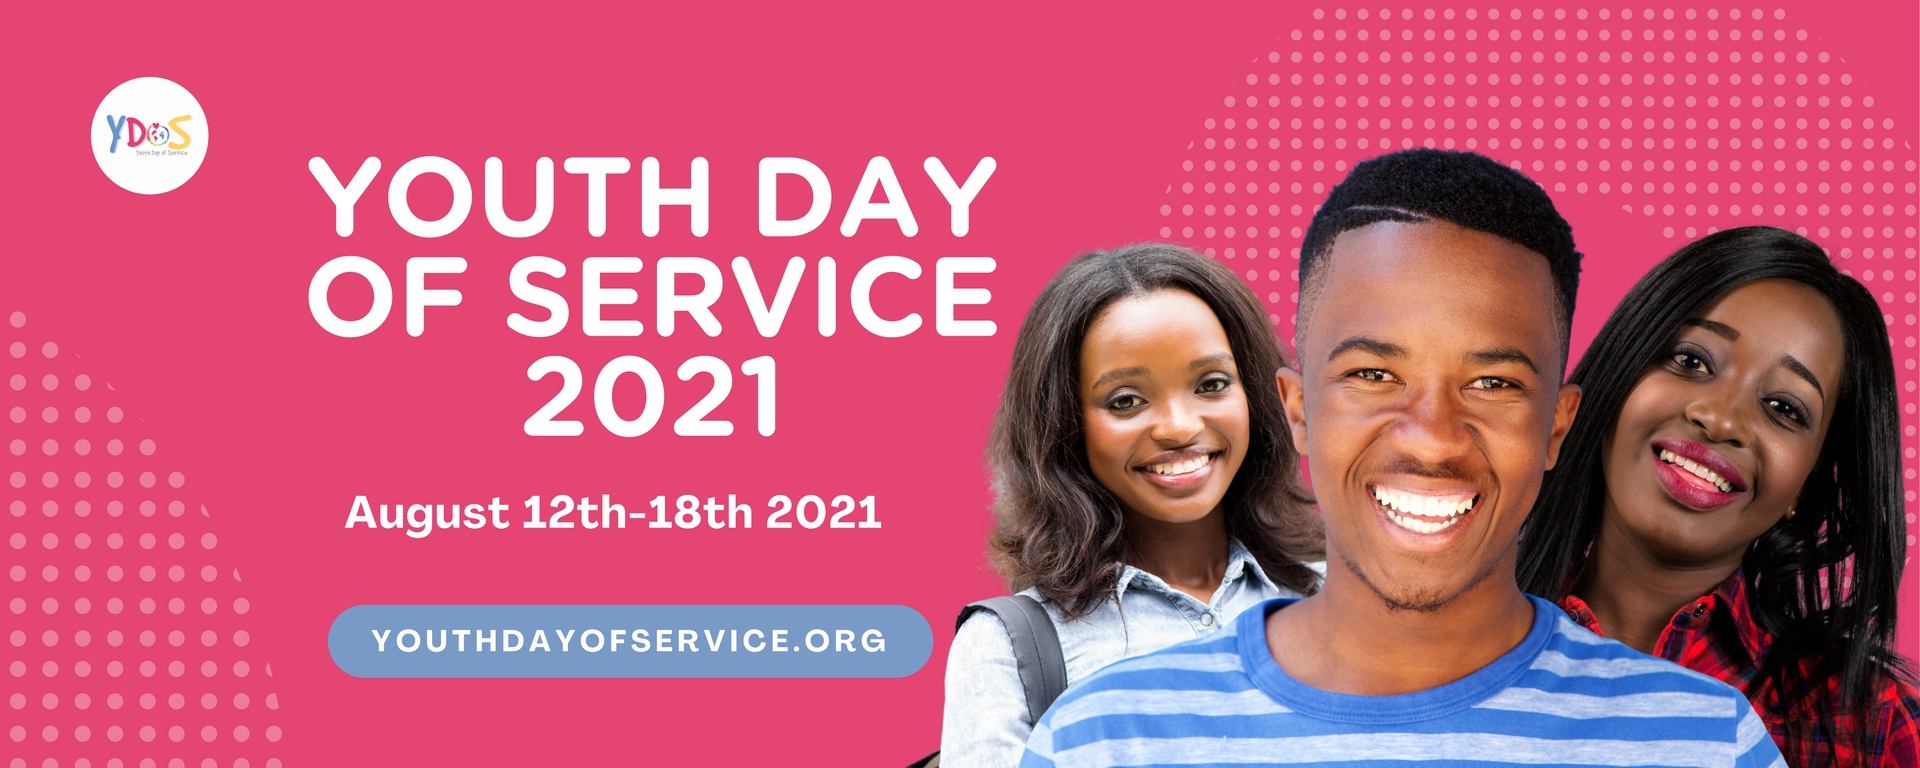 Leap Africa - Youth Day of Service 2021 Movemeback African event cover image